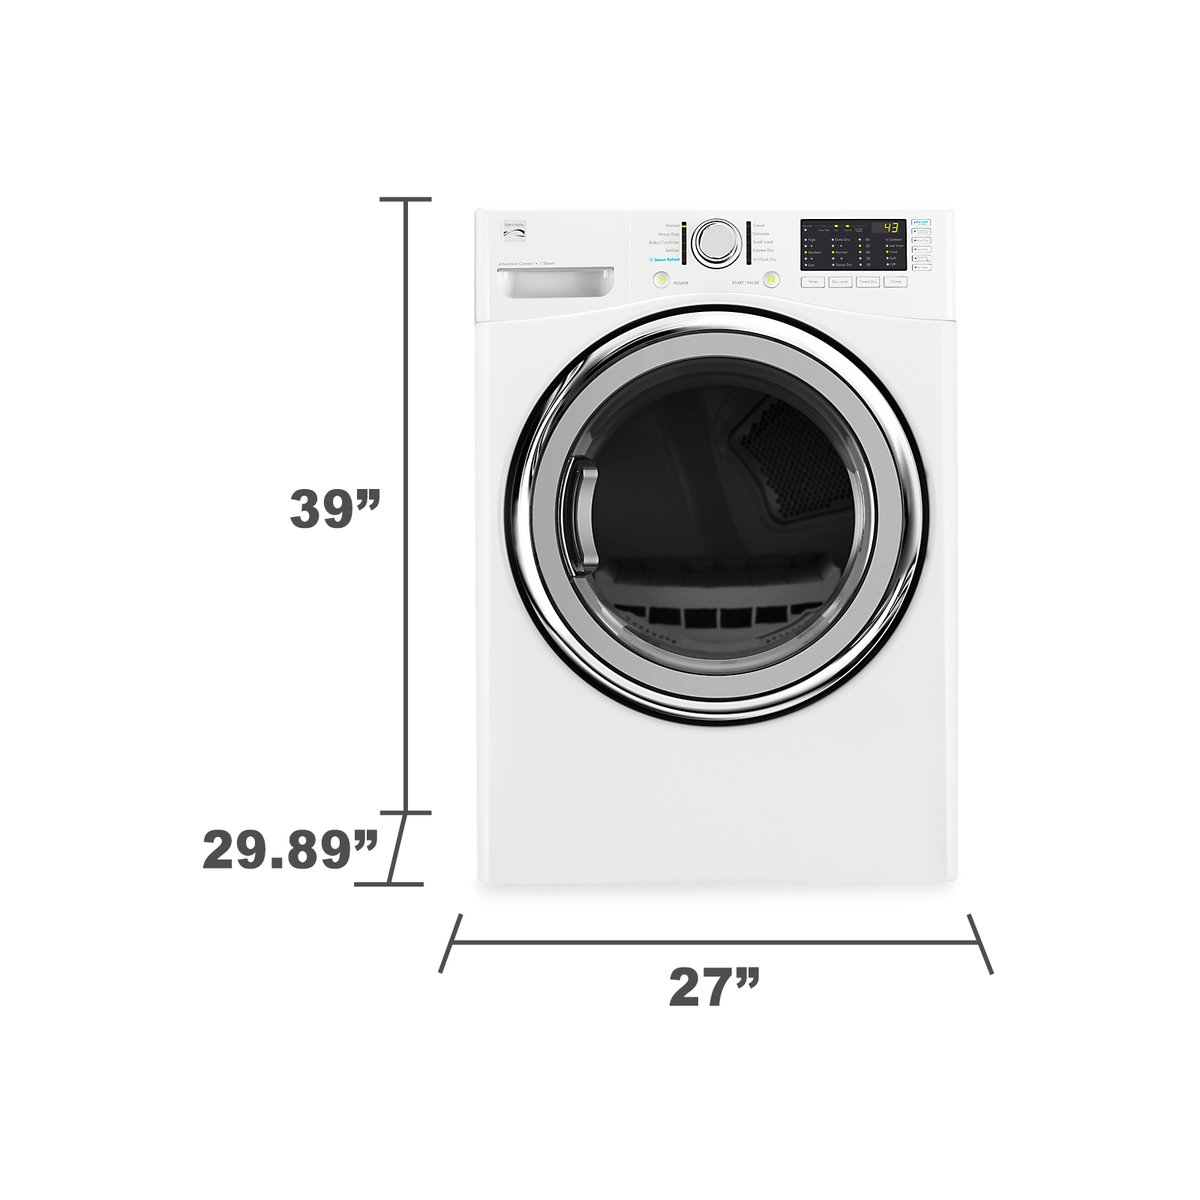 Amazon.com: Kenmore 81382 7.4 cu. ft. Electric Dryer with Steam in White,  includes delivery and hookup: Appliances